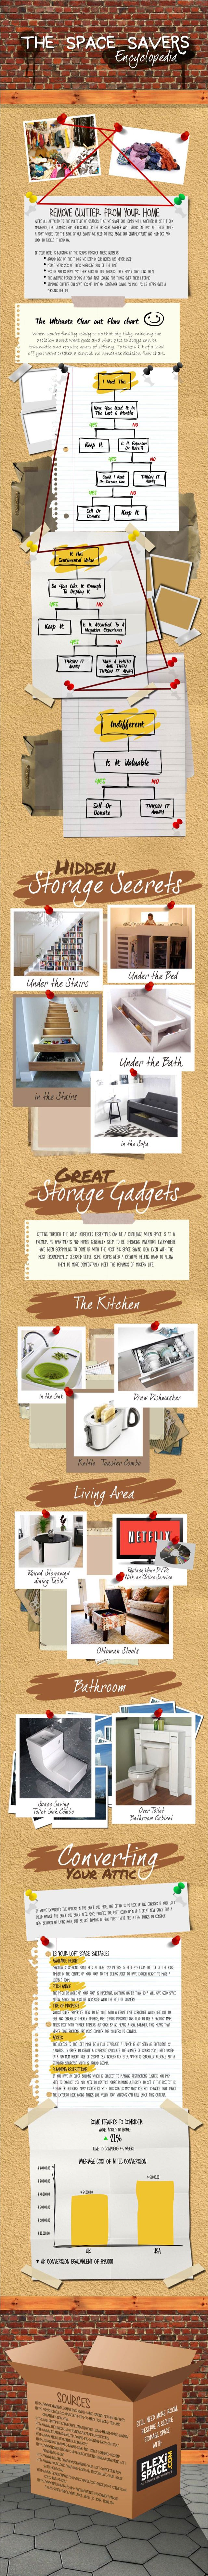 House and Condo Space-Savers Encyclopedia (Infographic) Home Improvements Infographics interior decorating Latest Posts